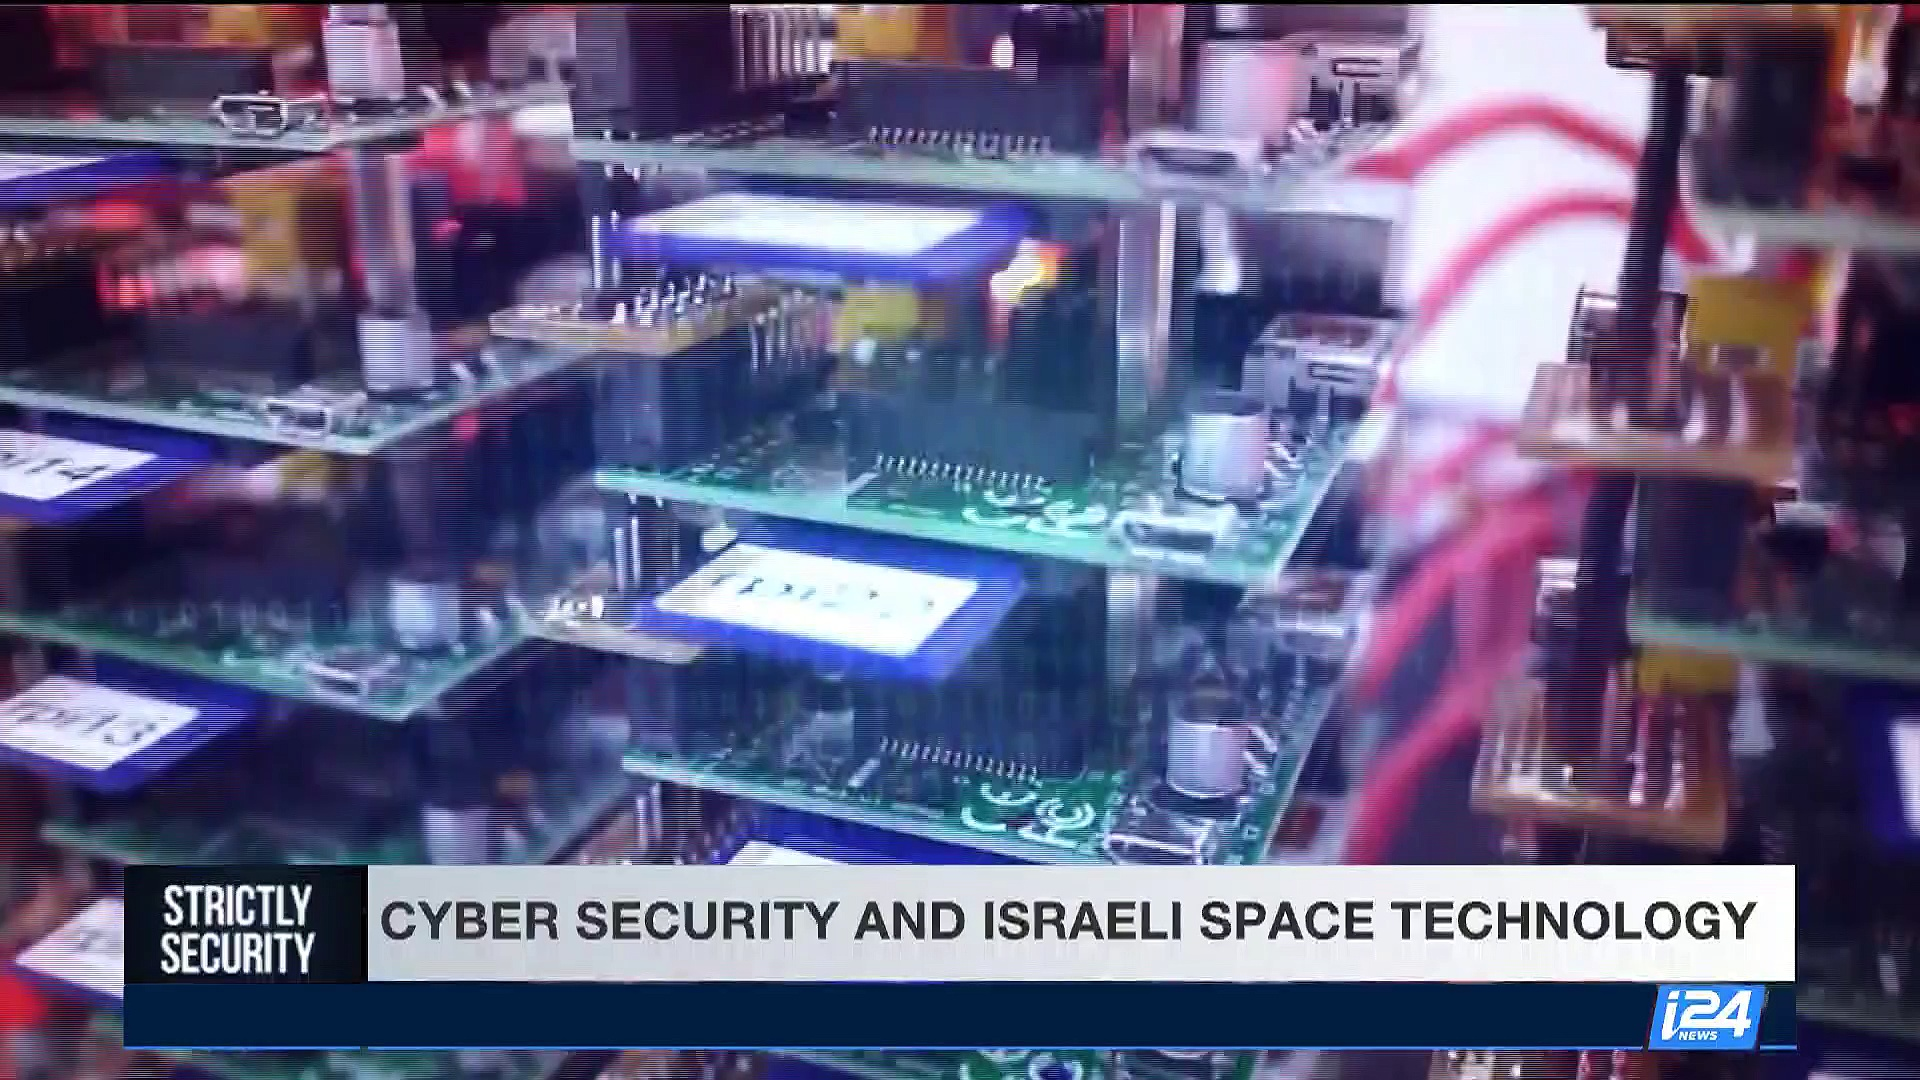 STRICTLY SECURITY |Cyber security and Israeli space technology  | Saturday, July 1st